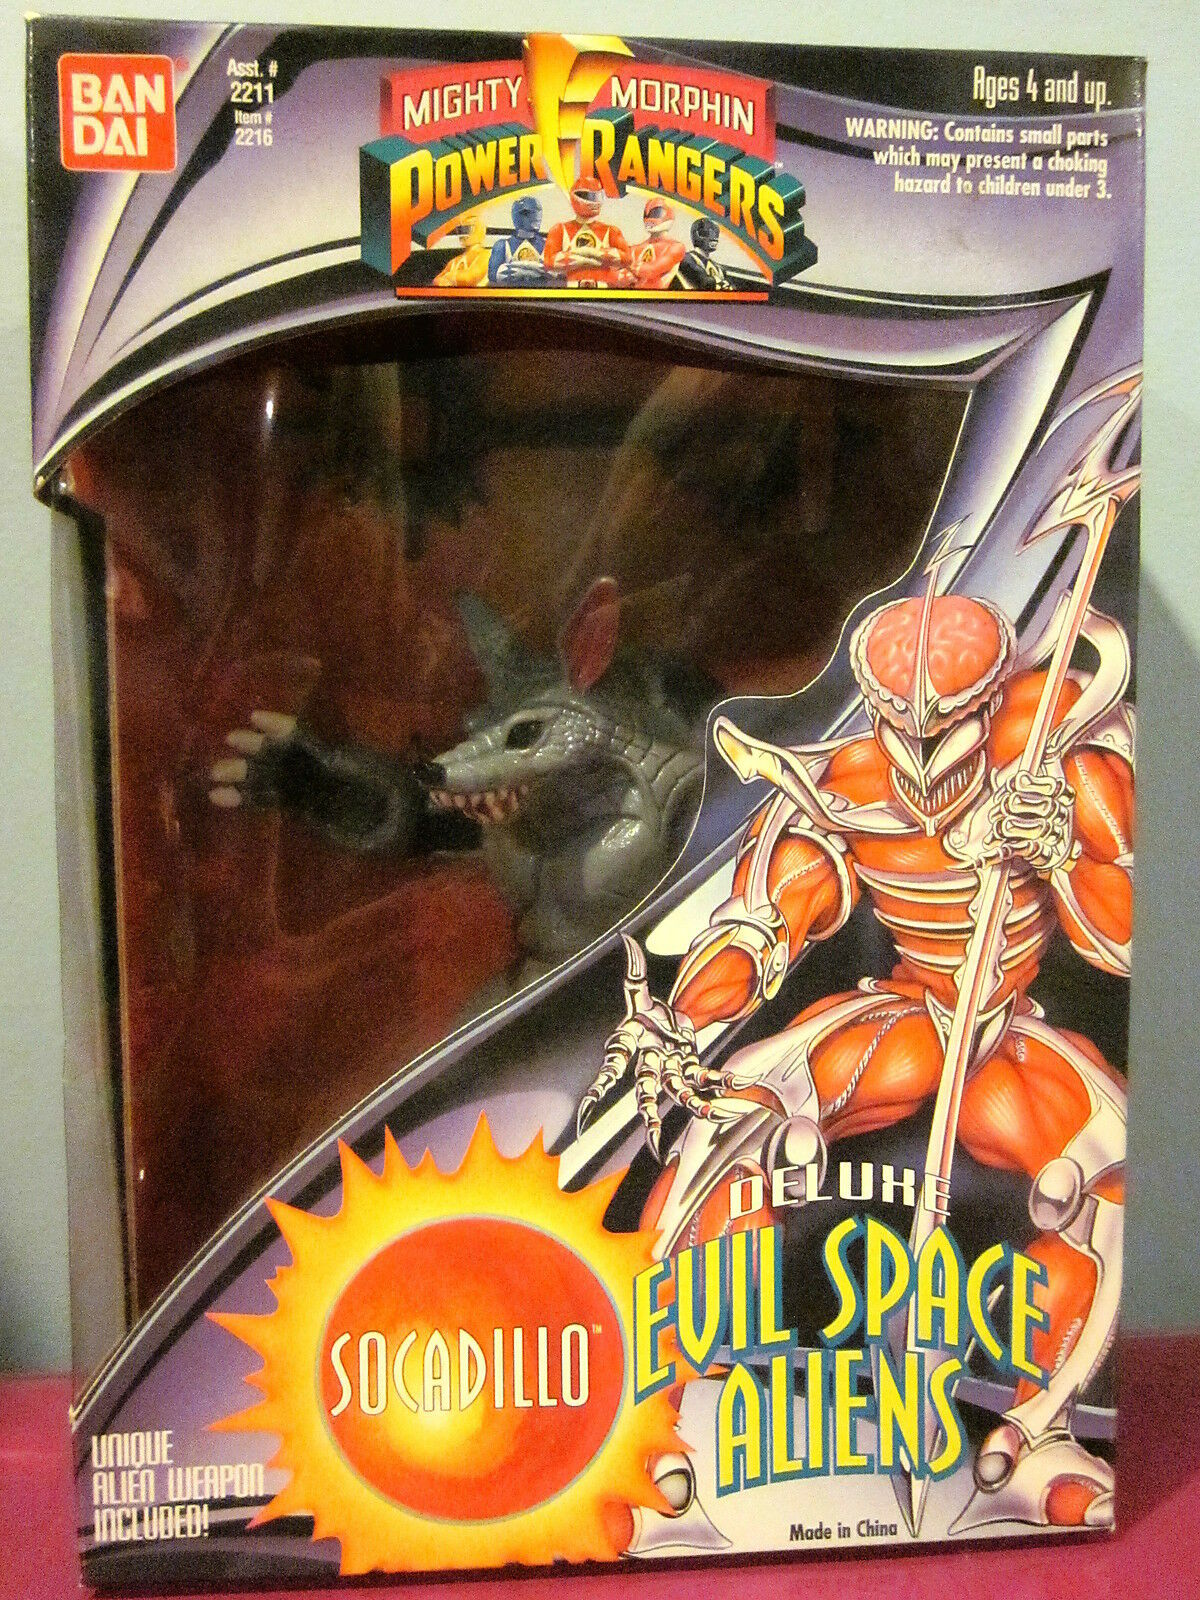 Mighty Morphin Power Rangers Evil Space Aliens Socadillo Socadillo Socadillo Sealed 41385d